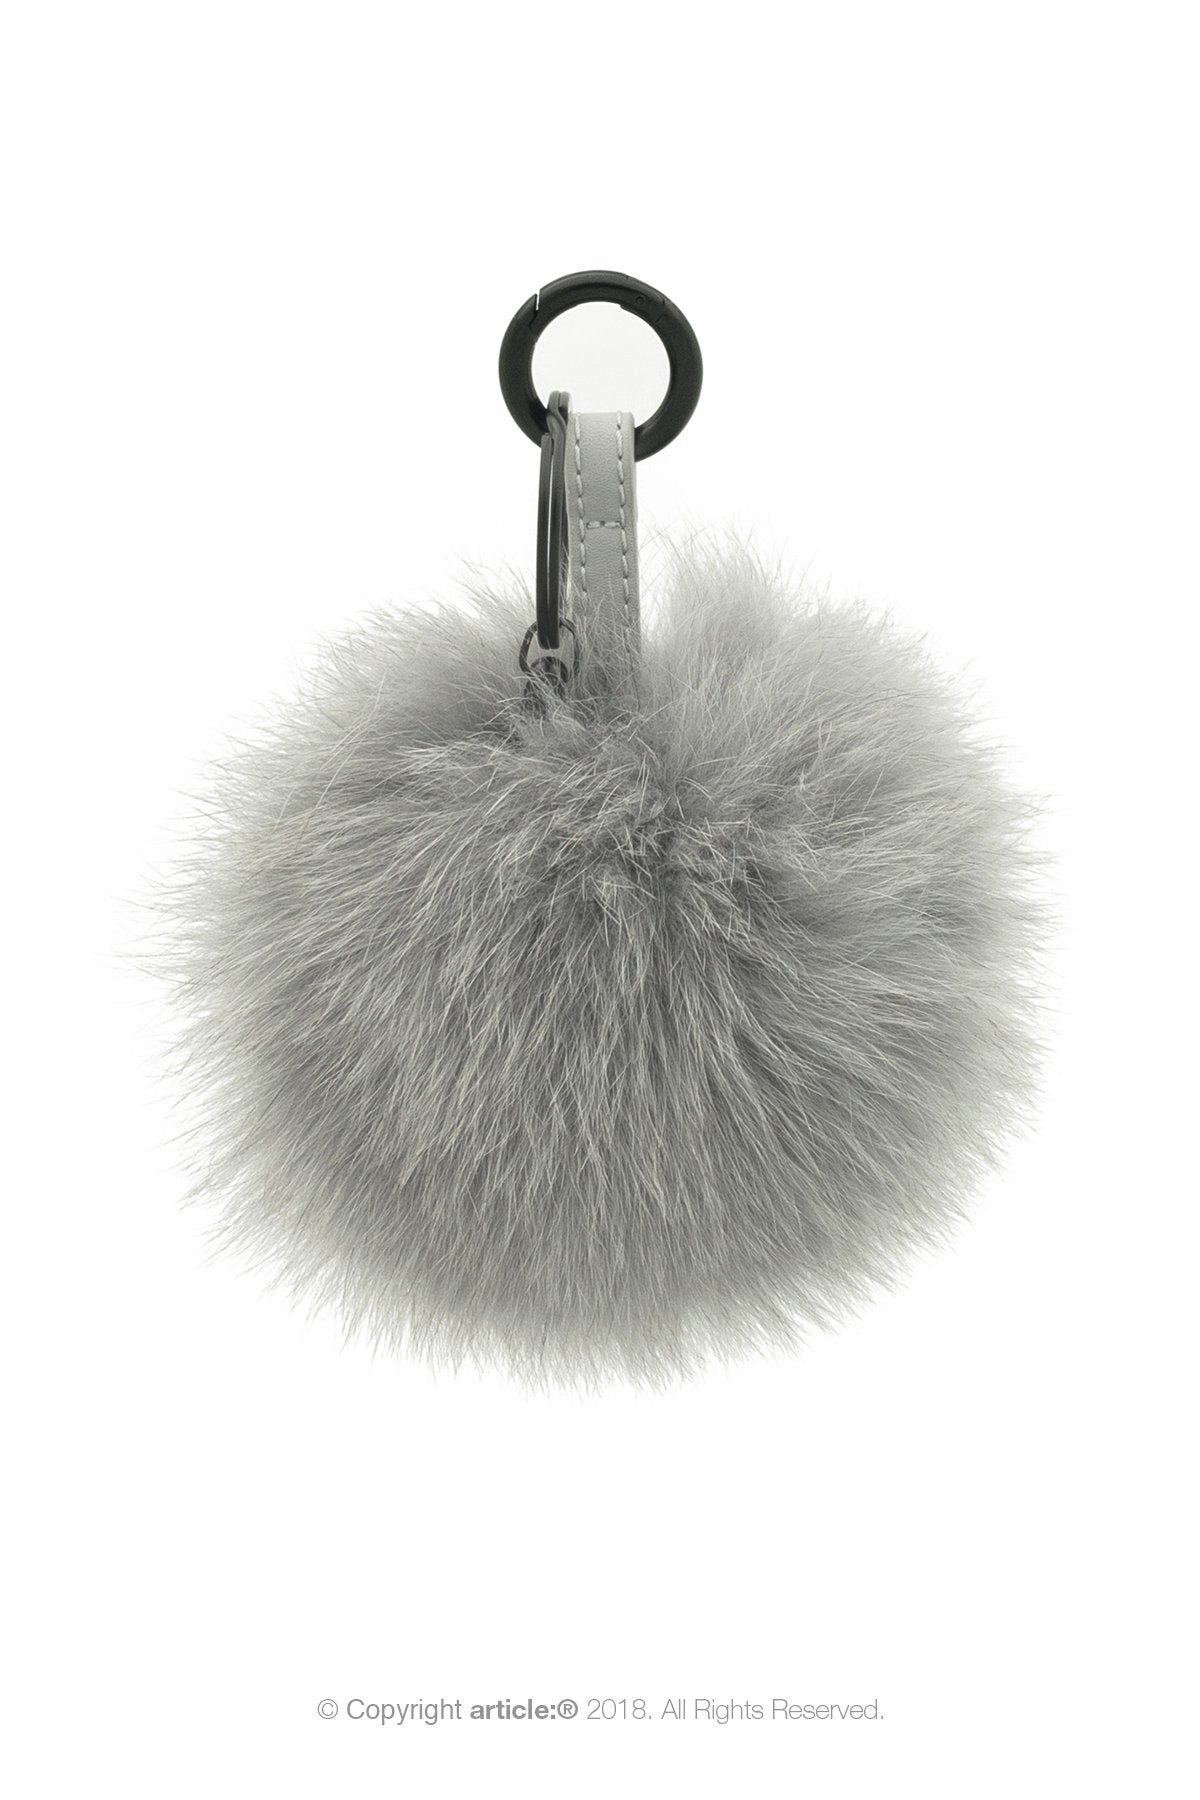 article: #400 Bag Charm / Keyring Pom Pom - Gris